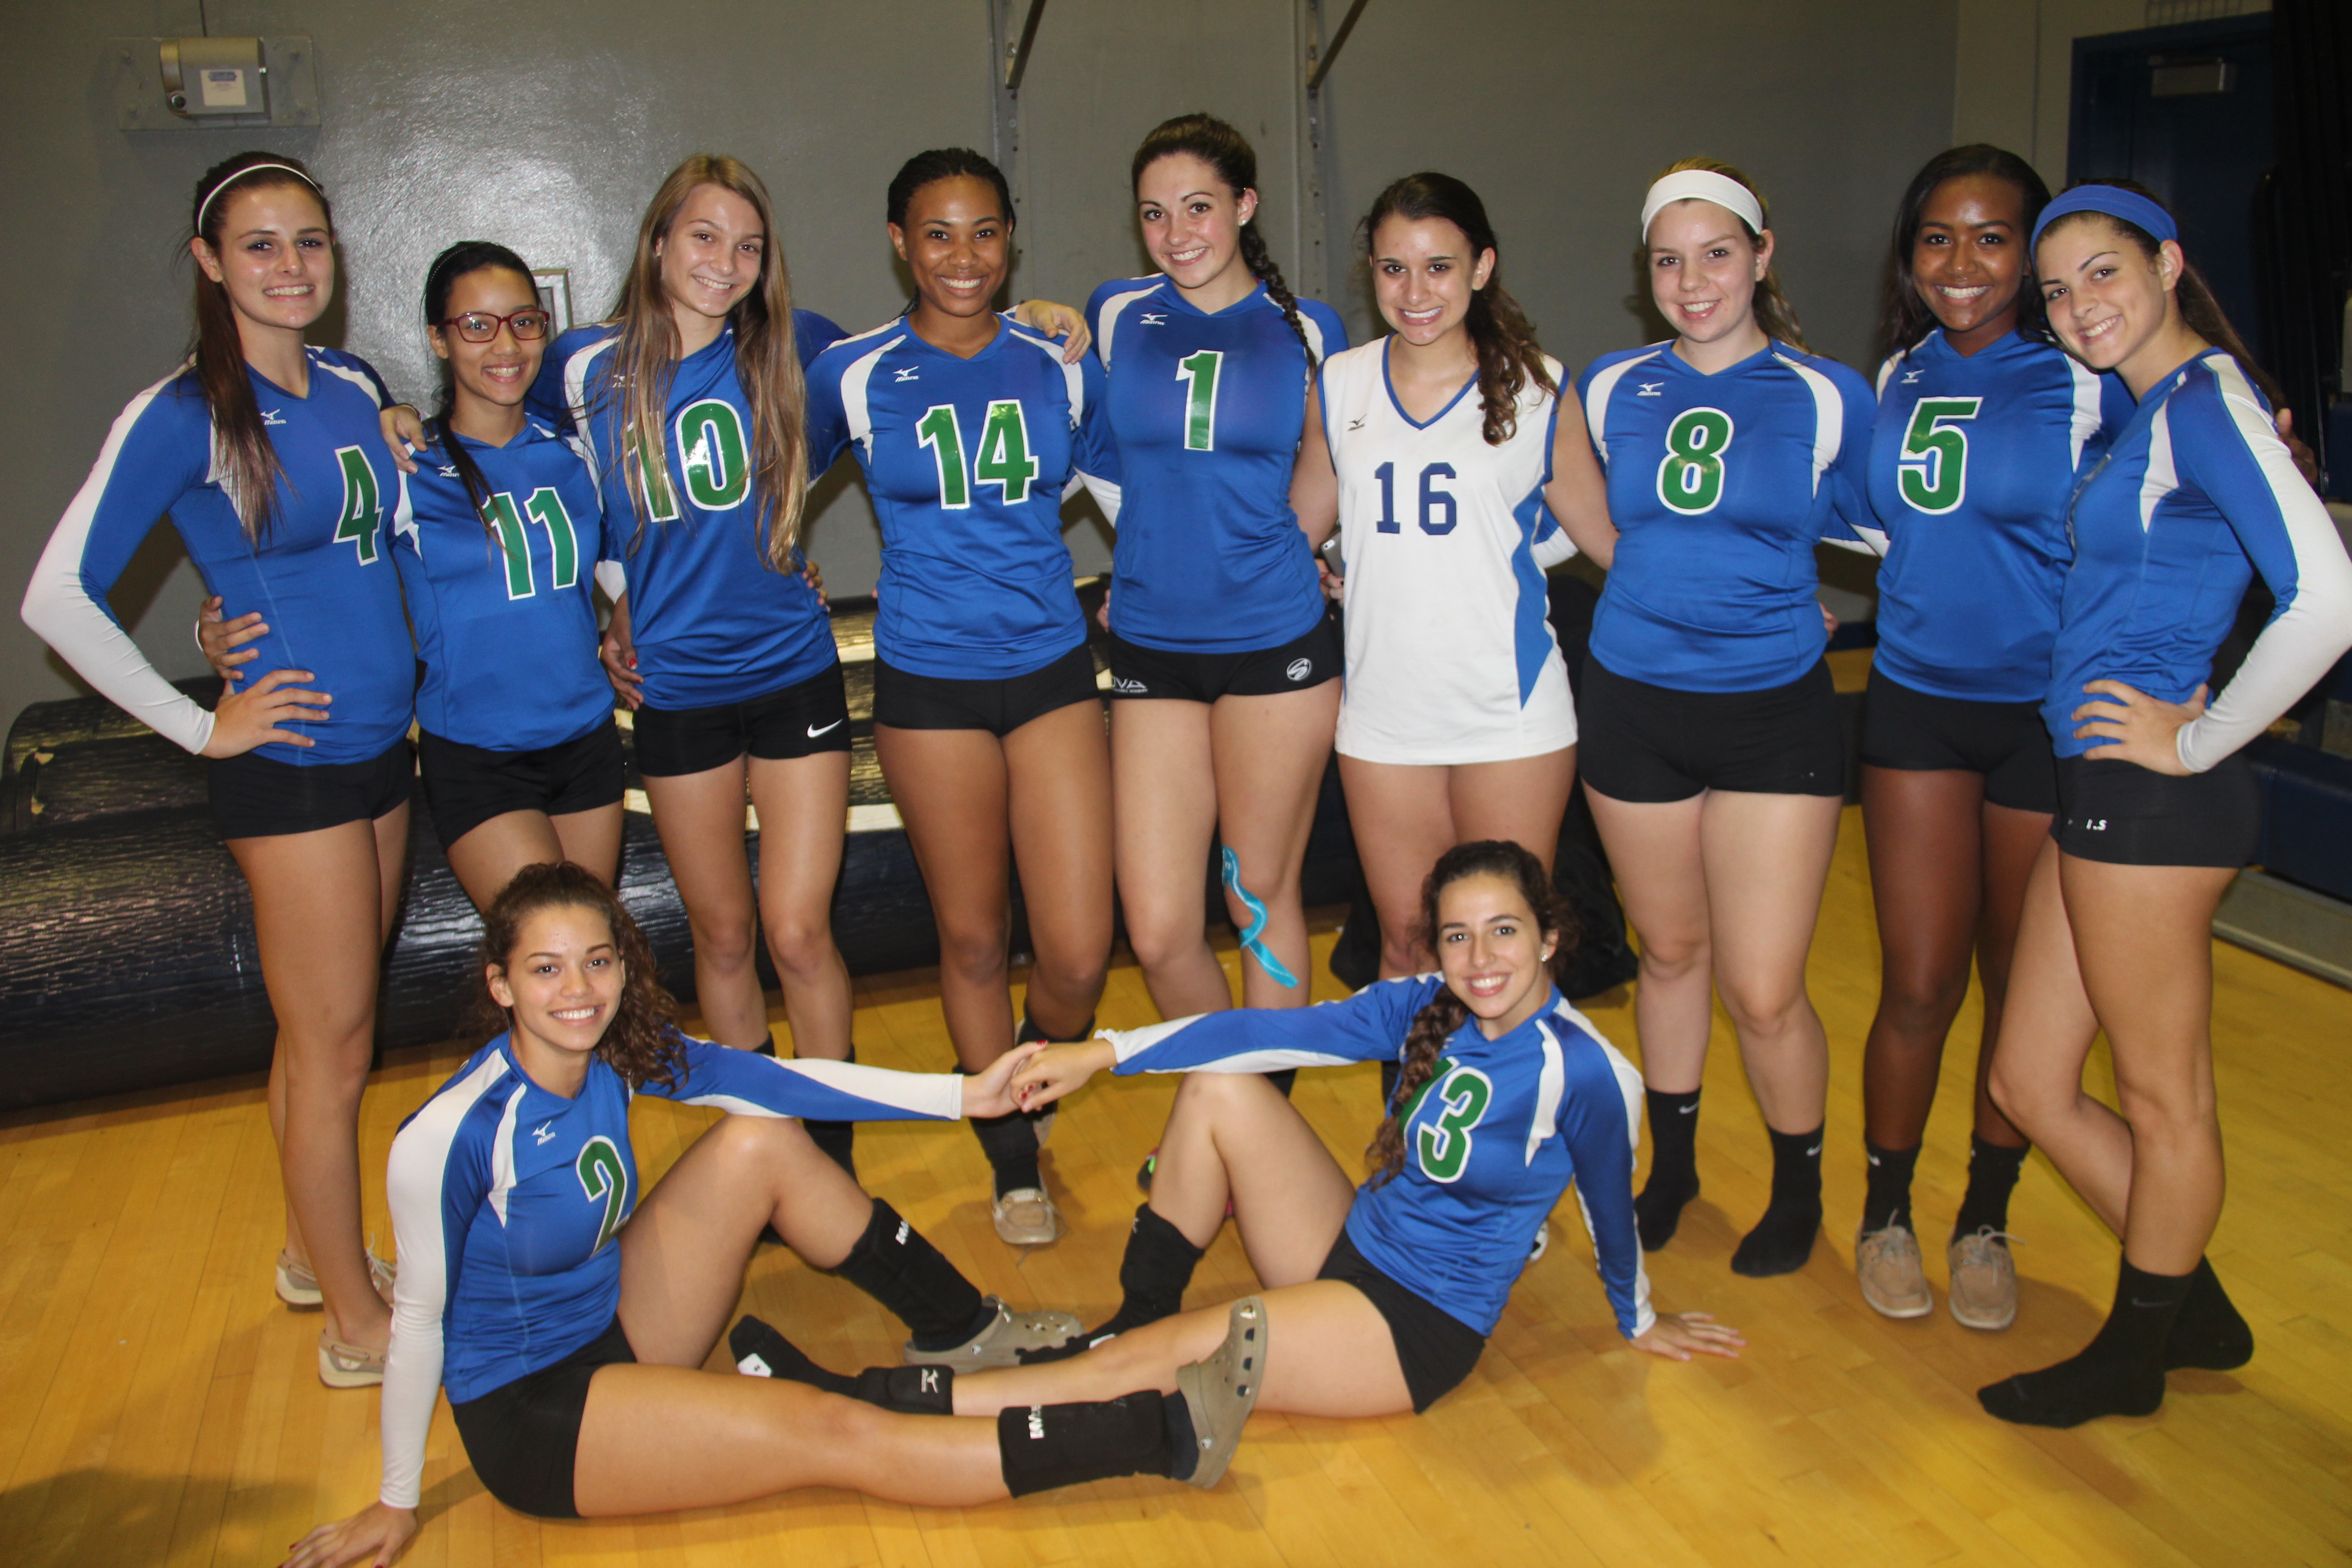 coral springs high school girls volleyball team is young